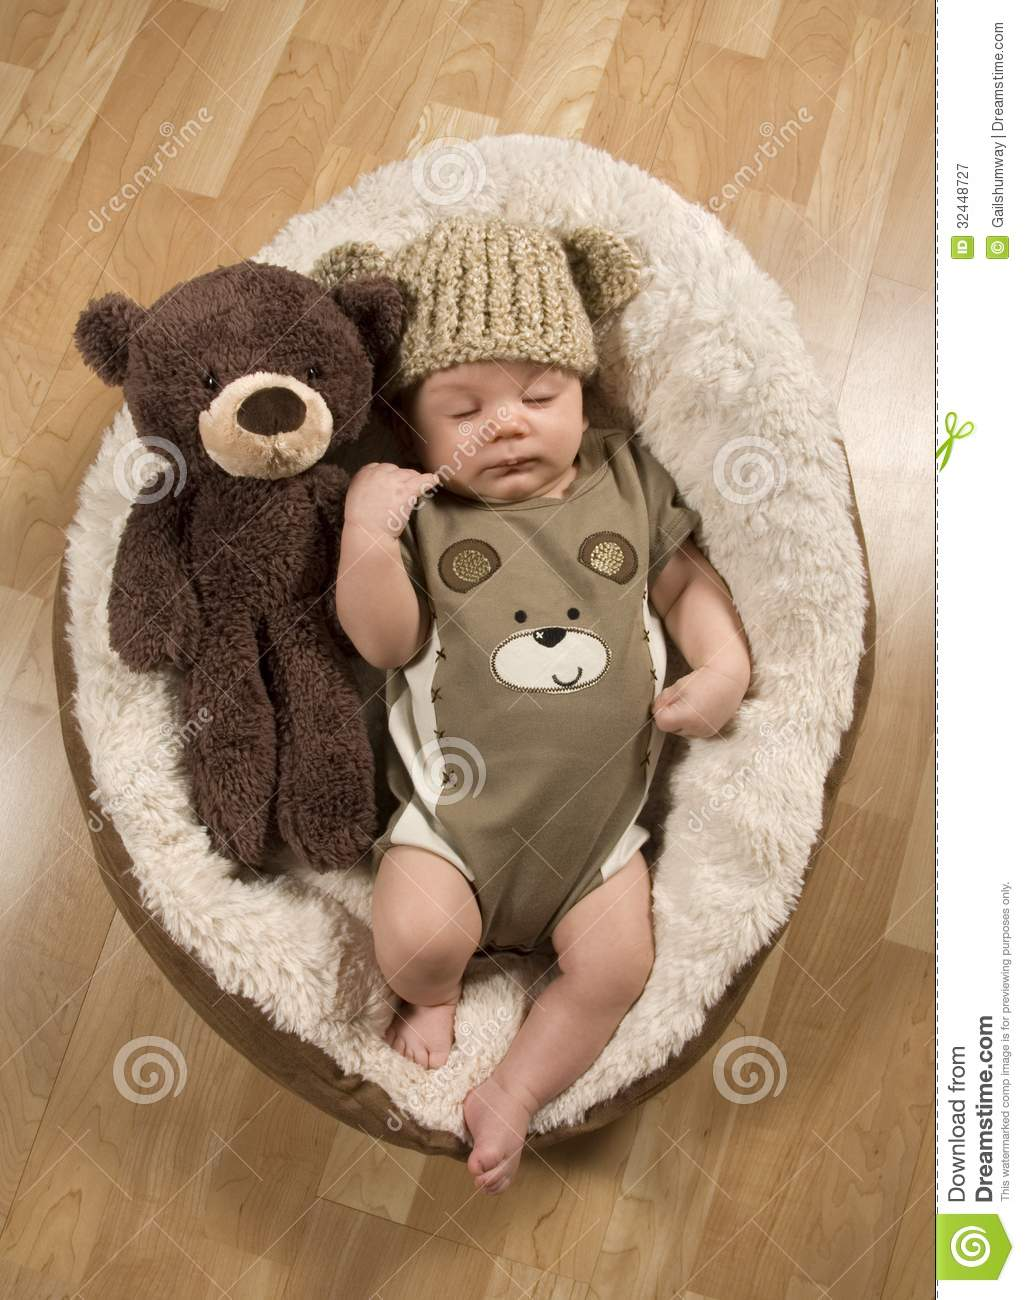 Baby Boy Wearing A Teddy Bear Hat And Romper Royalty Free